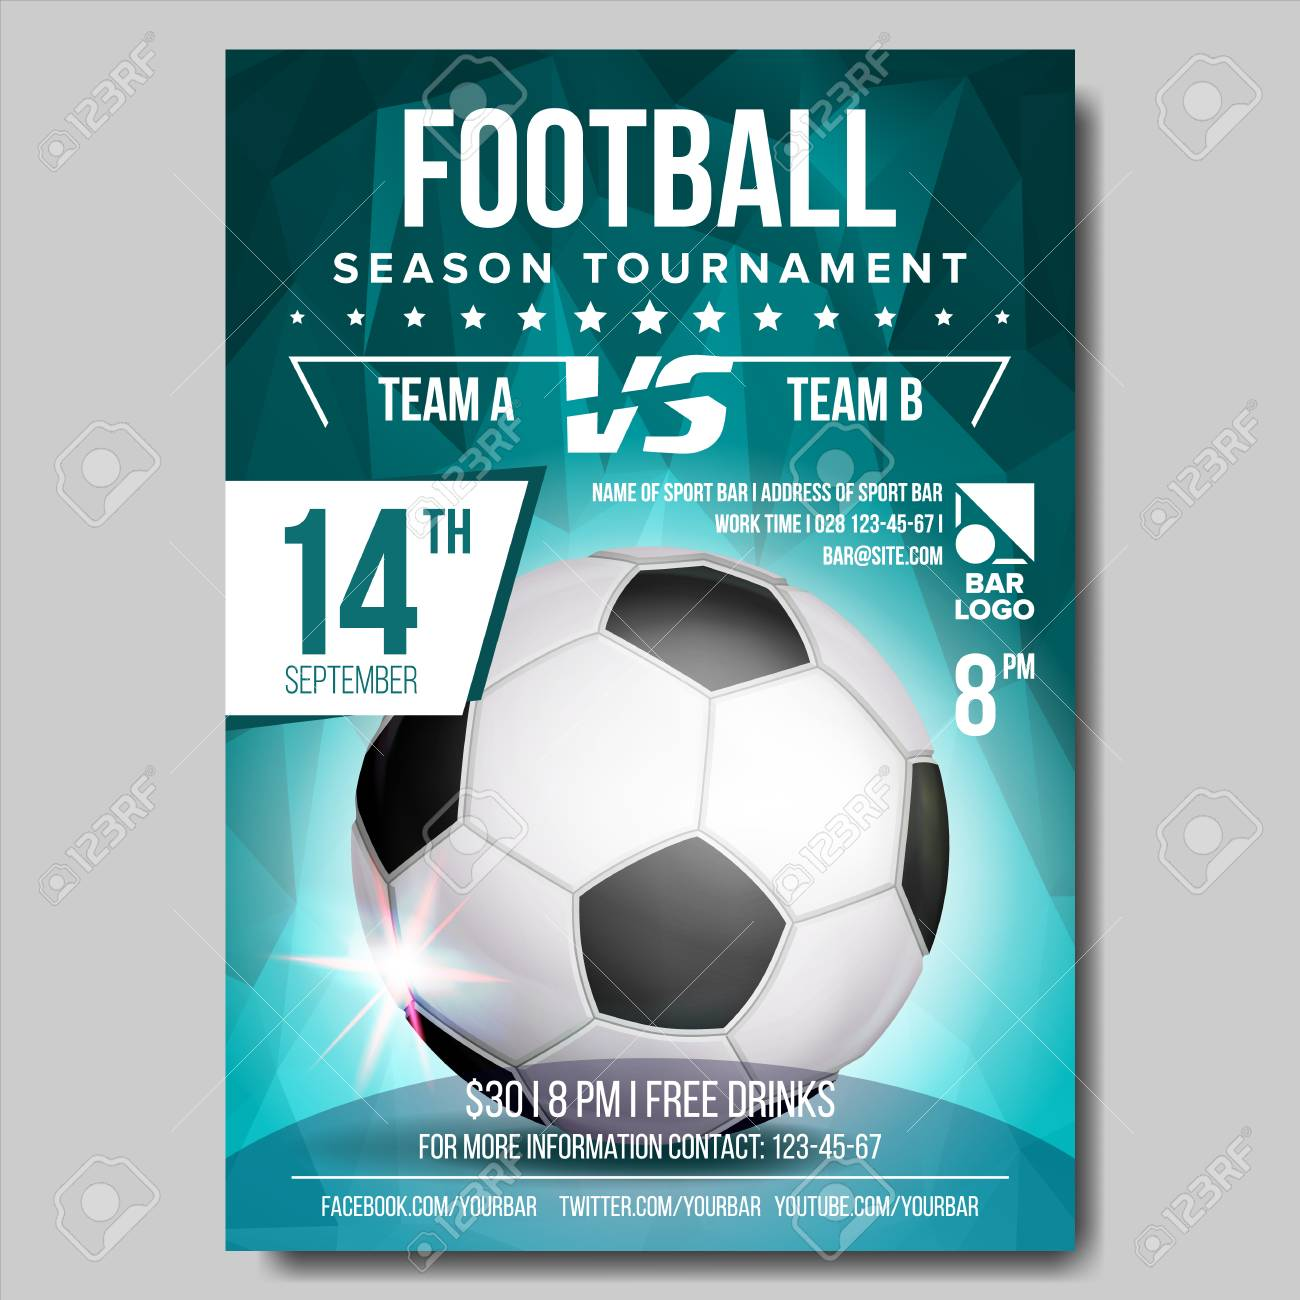 Soccer Poster Vector Football Ball Design For Sport Bar Promotion Tournament Championship